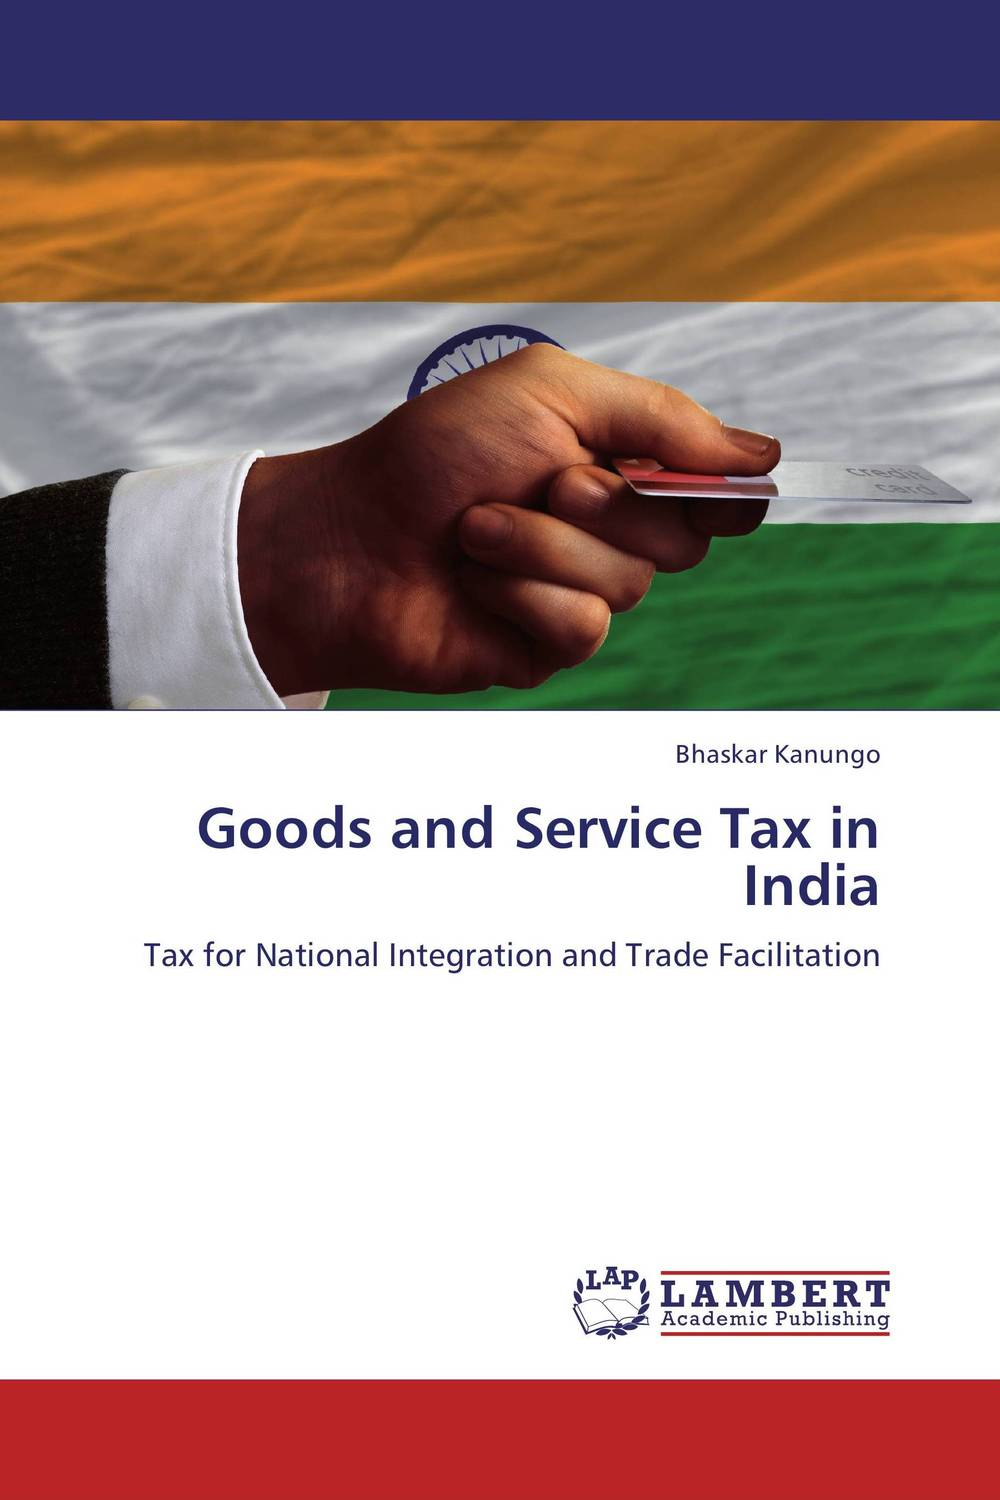 Goods and Service Tax in India n giusti diffuse entrepreneurship and the very heart of made in italy for fashion and luxury goods